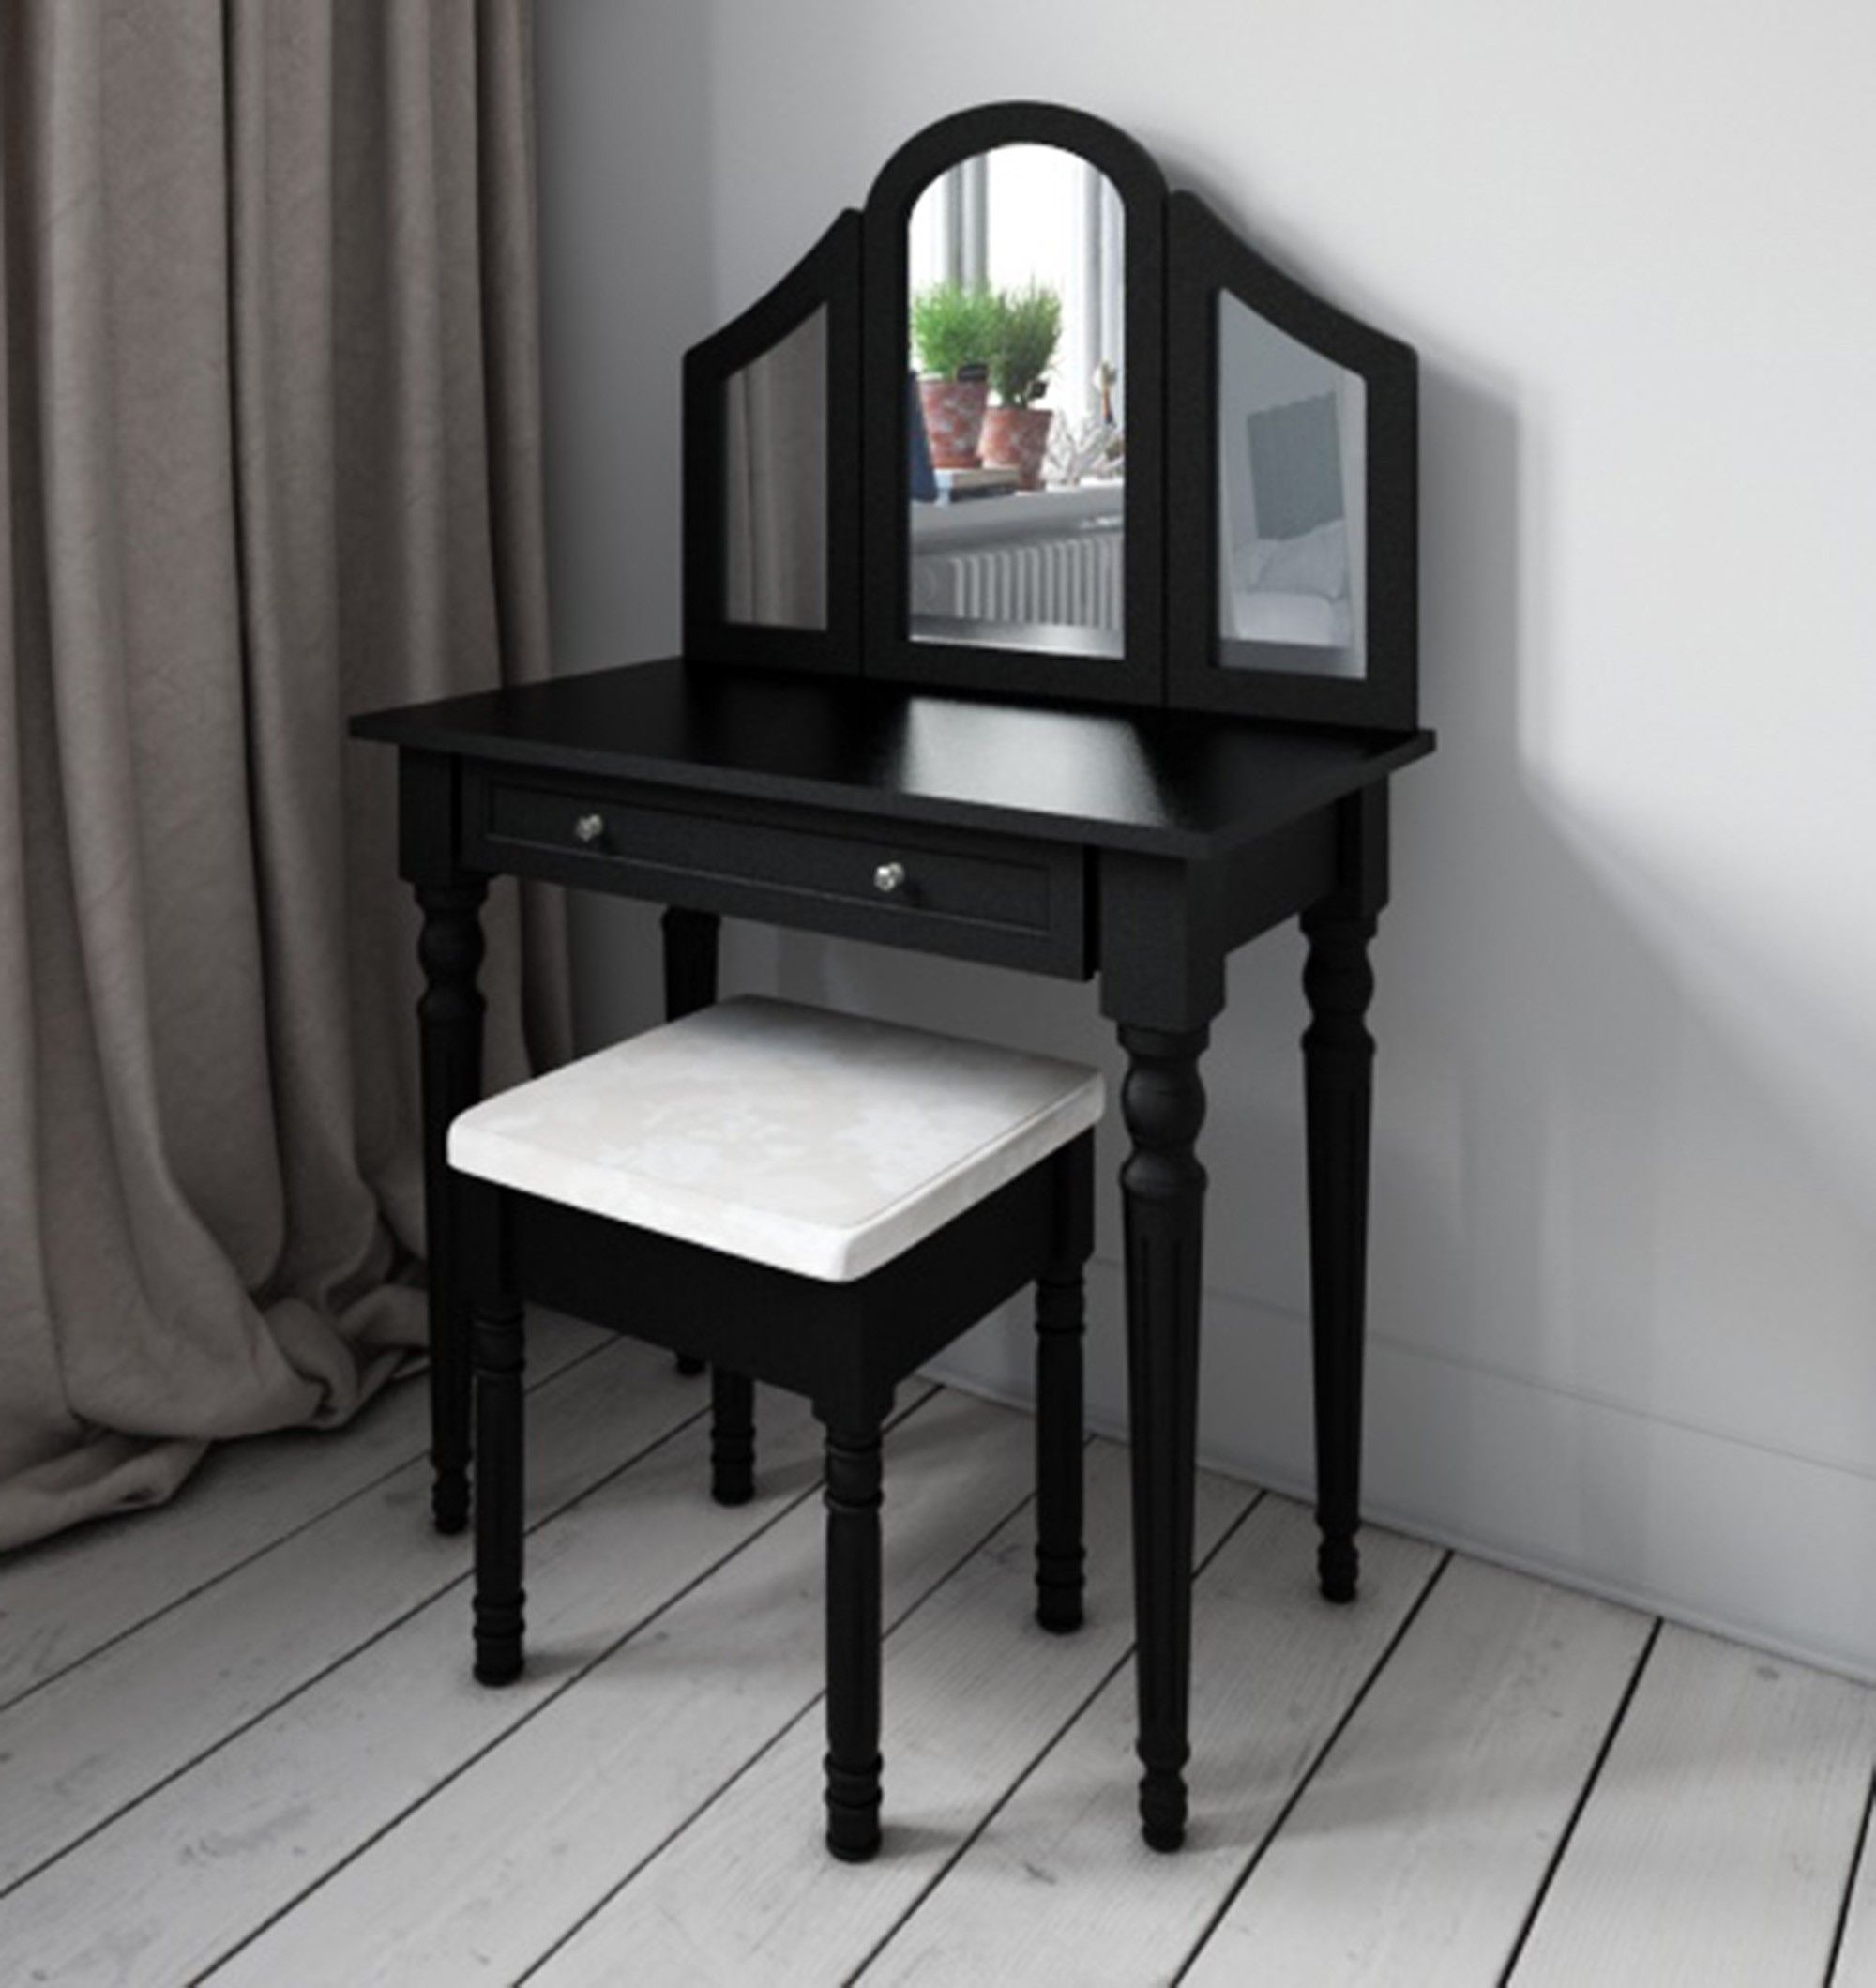 Dressing table with mirror black dressing table shabby chic  bedroom design  pinterest